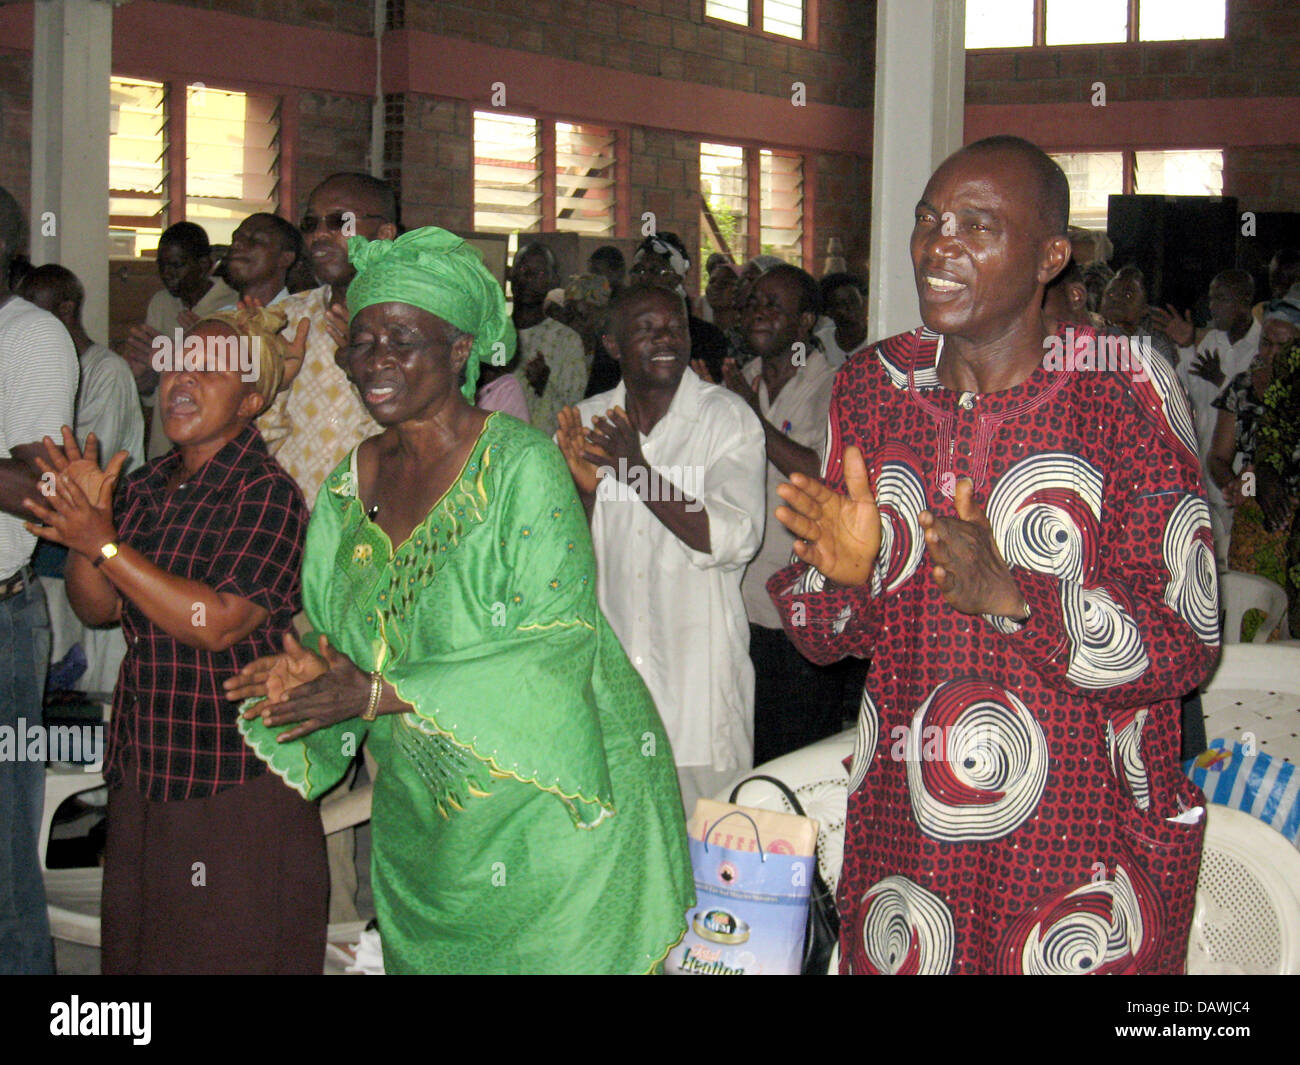 Some members of the chuch 'Mountain of Fire and Miracles Ministries' are pictured during a prayer in Lagos, - Stock Image